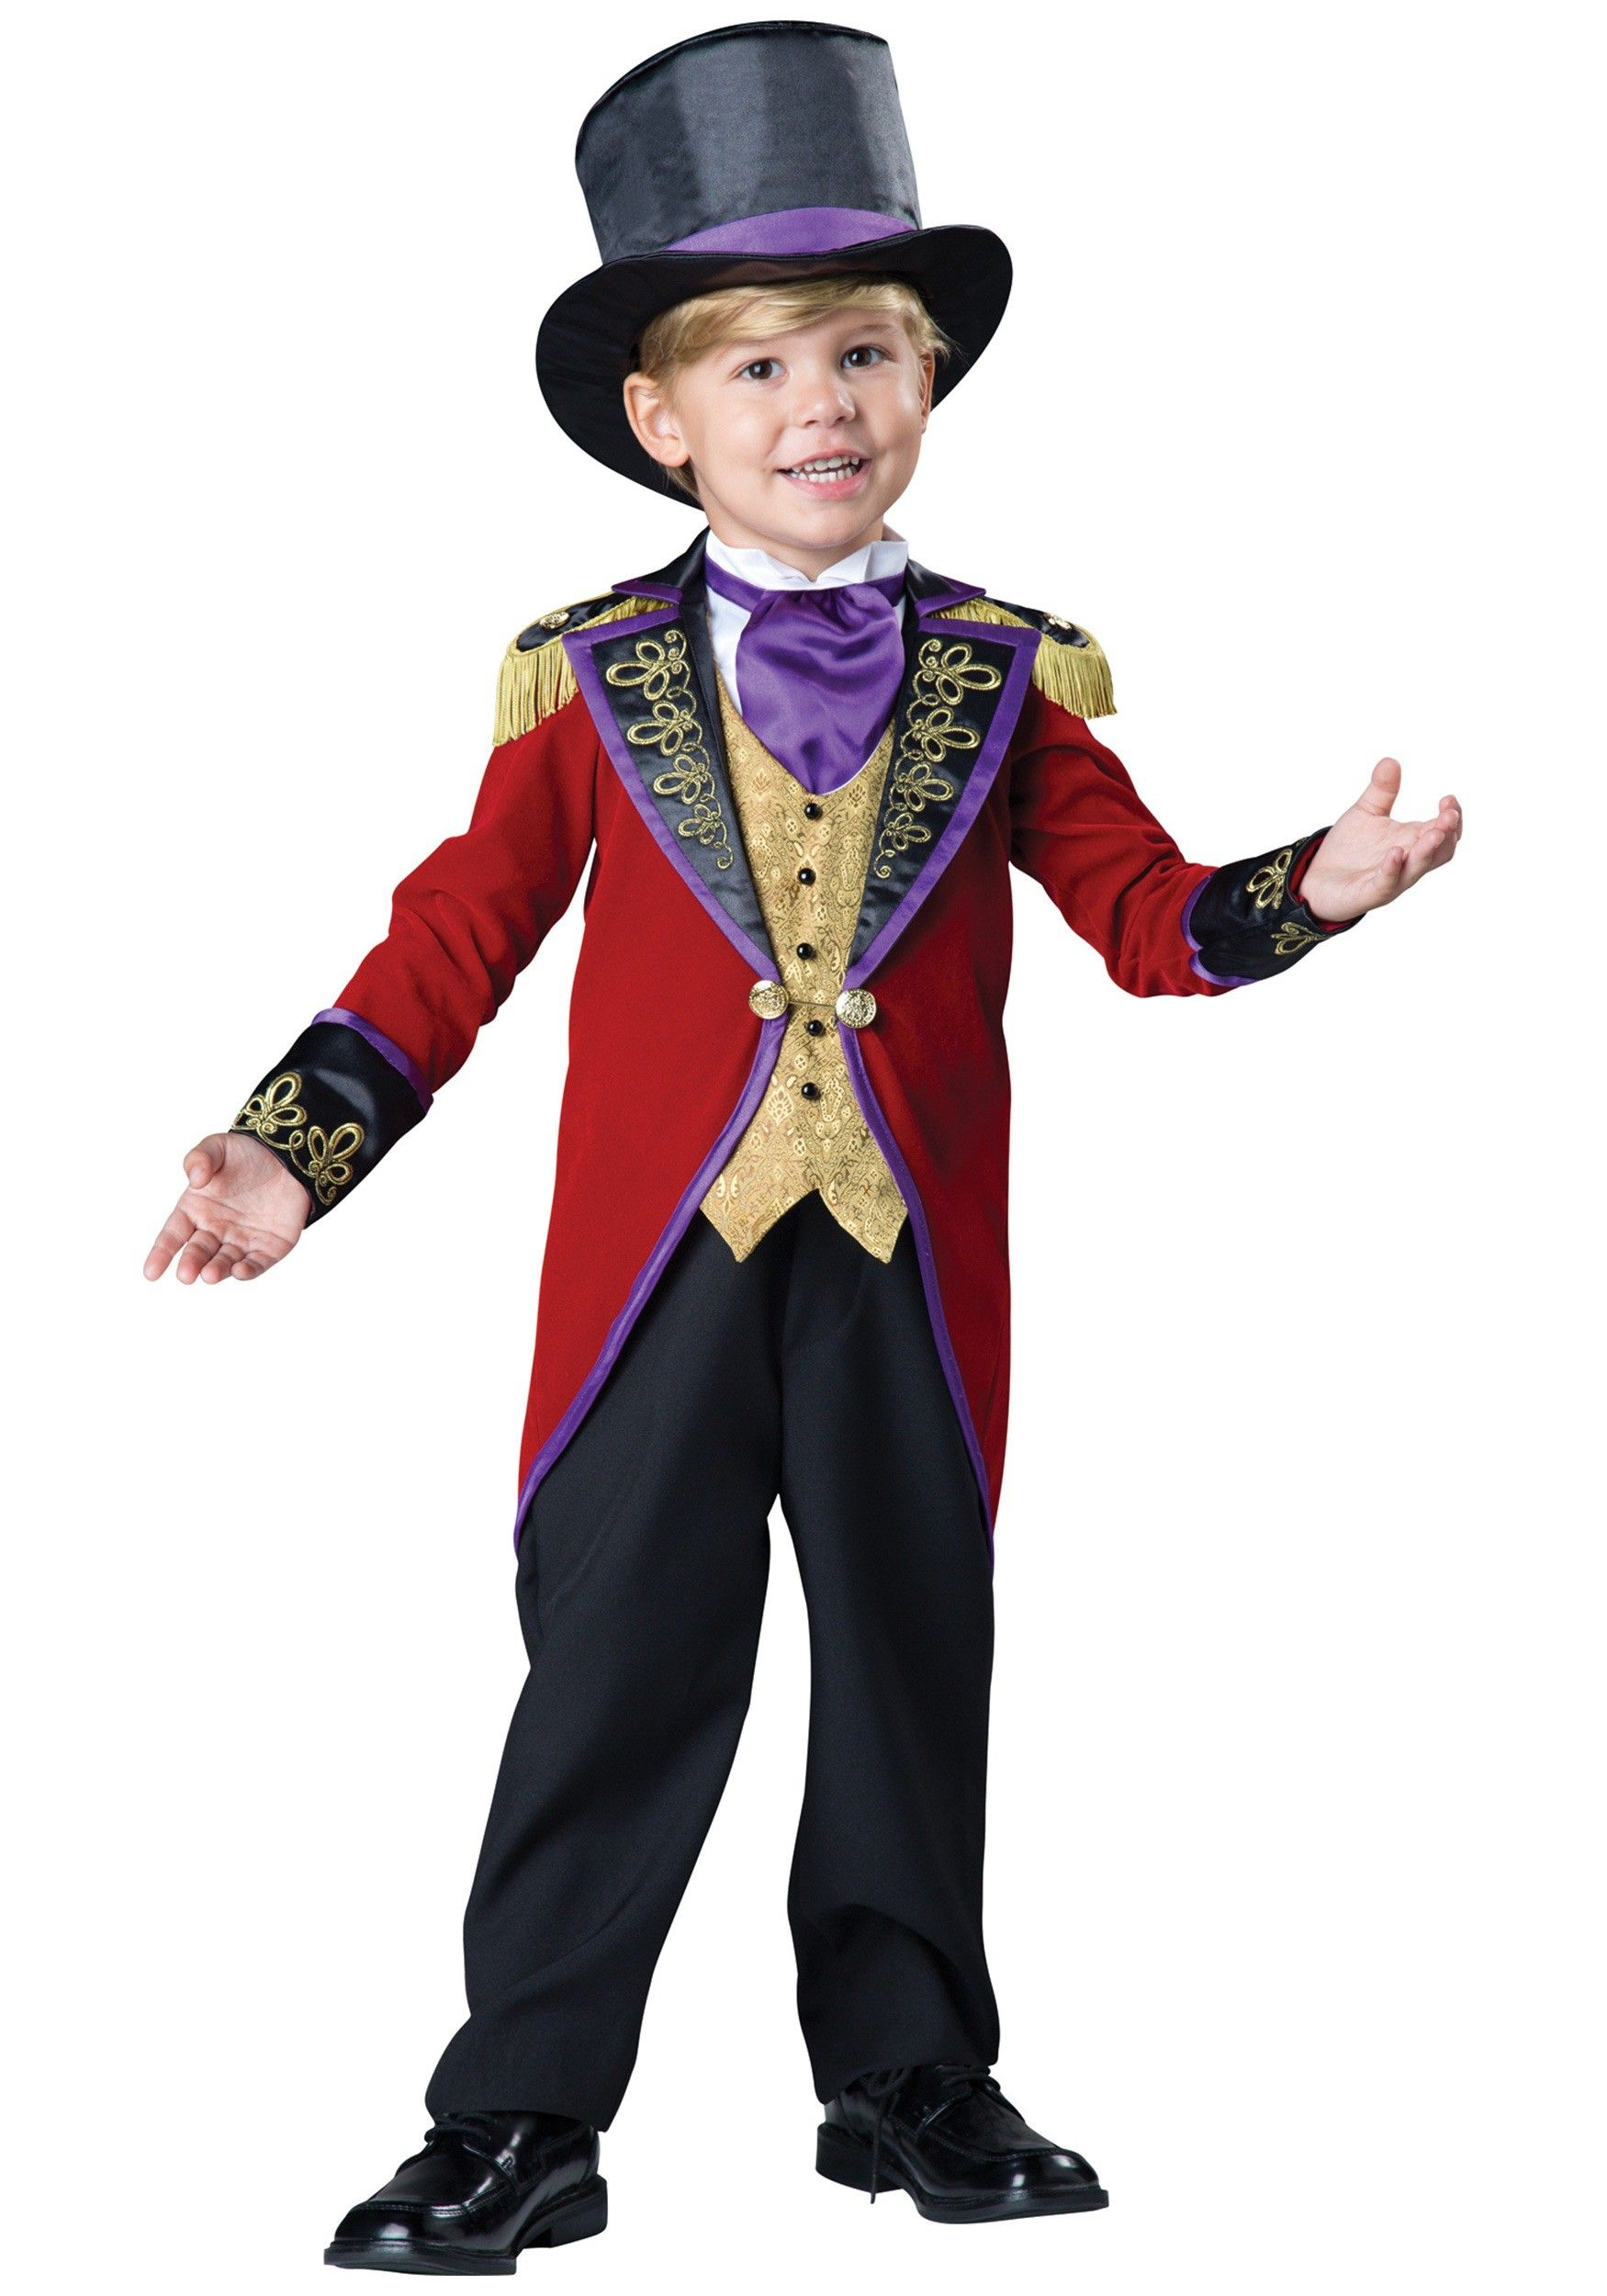 Toddler Ringmaster Costume | Ringmaster costume, Costumes and ...